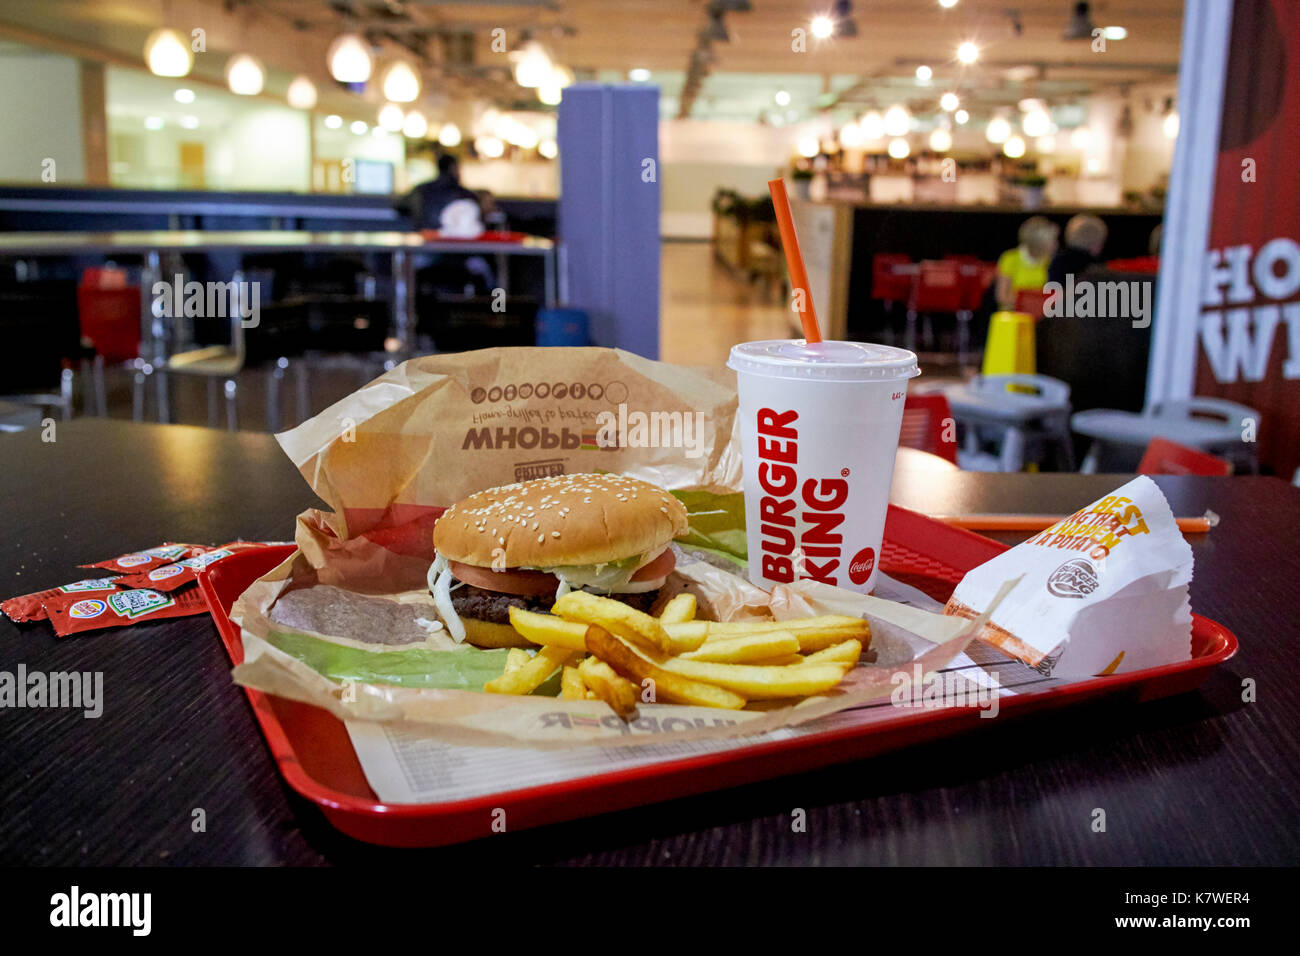 burger king meal on a tray in a restaurant in a regional airport in the uk at night waiting on a delayed flight - Stock Image